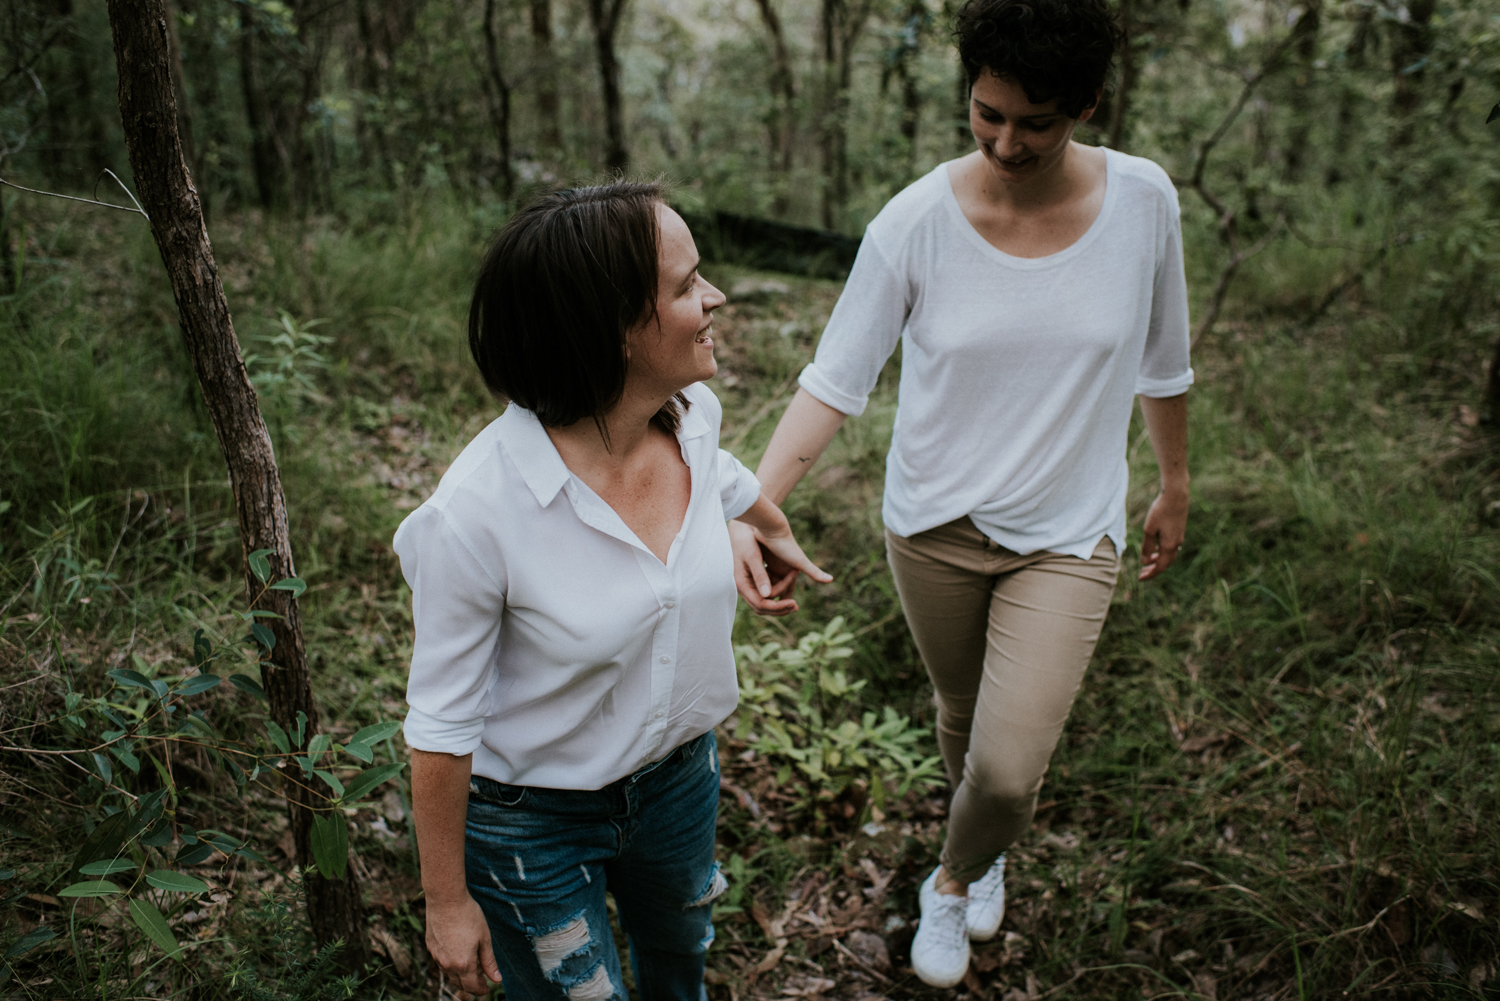 Brisbane Lesbian Wedding Photographer | Same-Sex Engagement-Elopement Photography-9.jpg